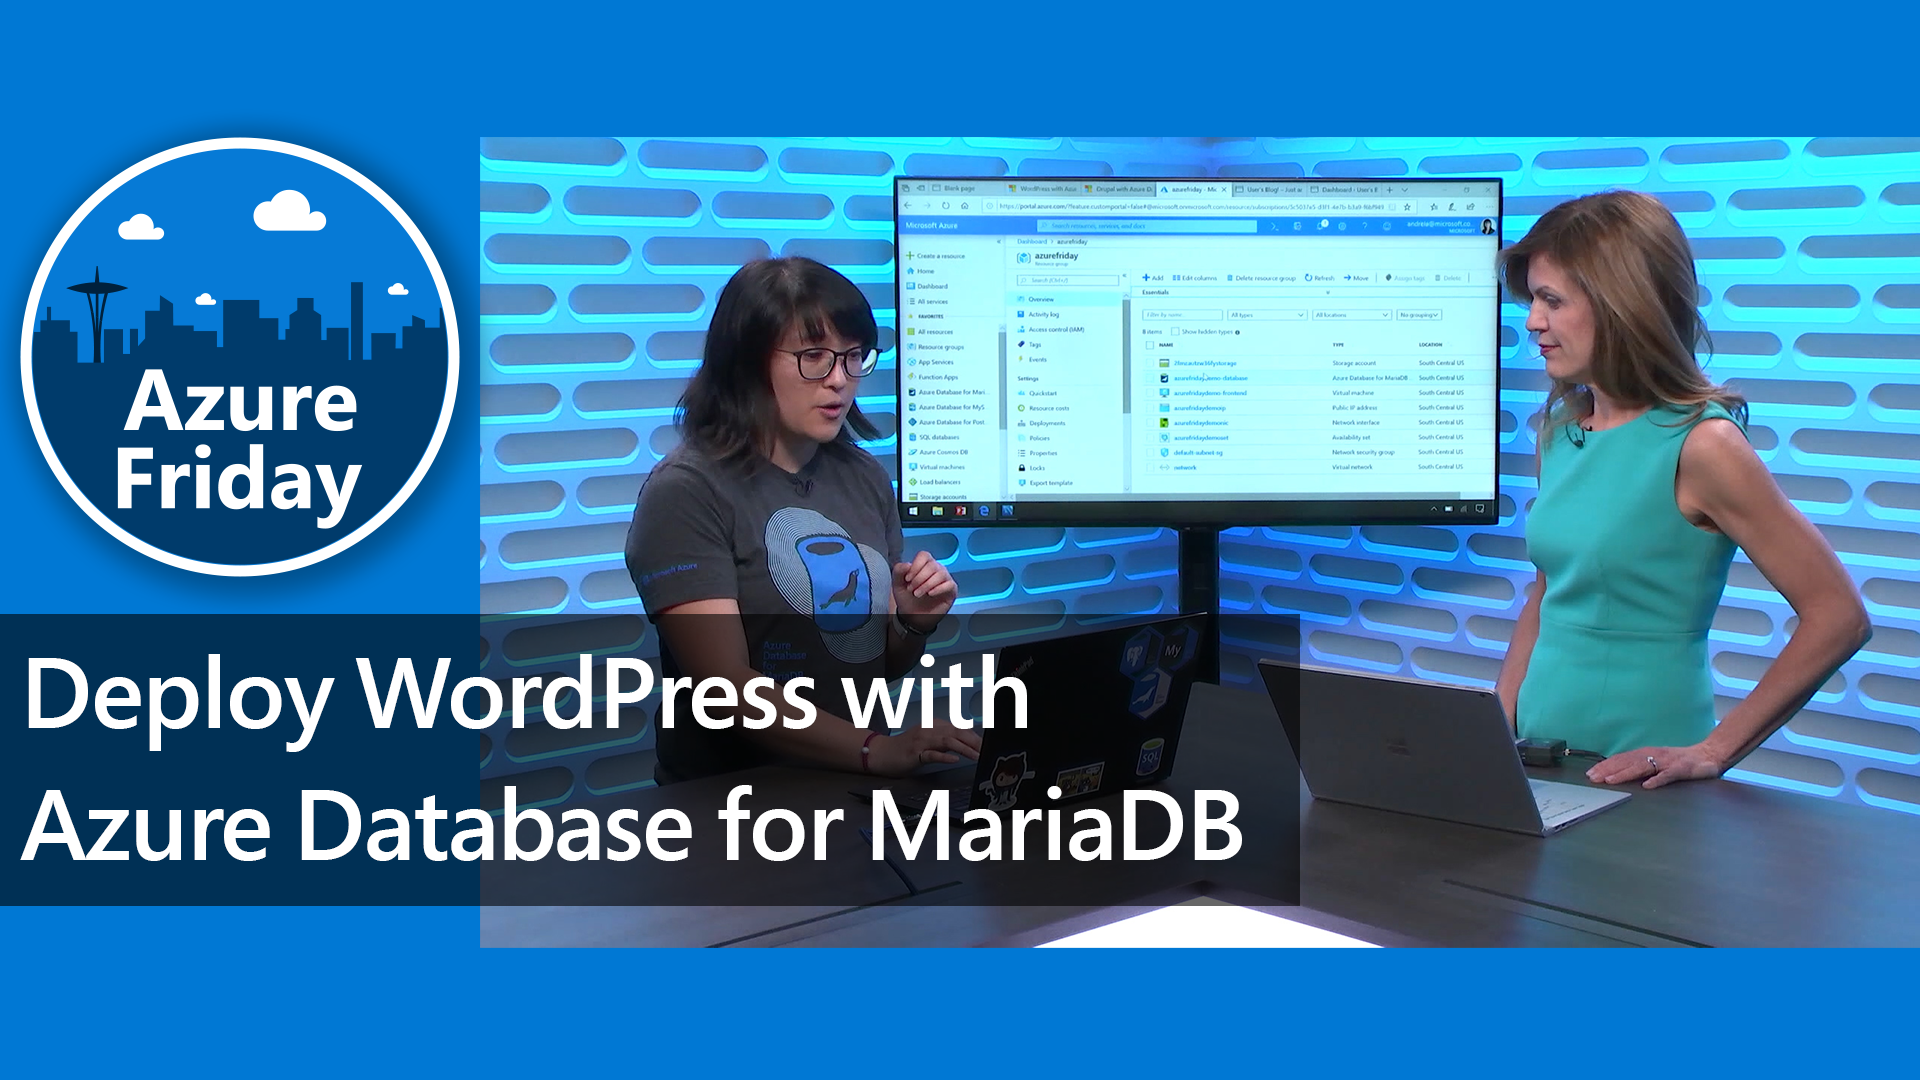 Deploy WordPress with Azure Database for MariaDB